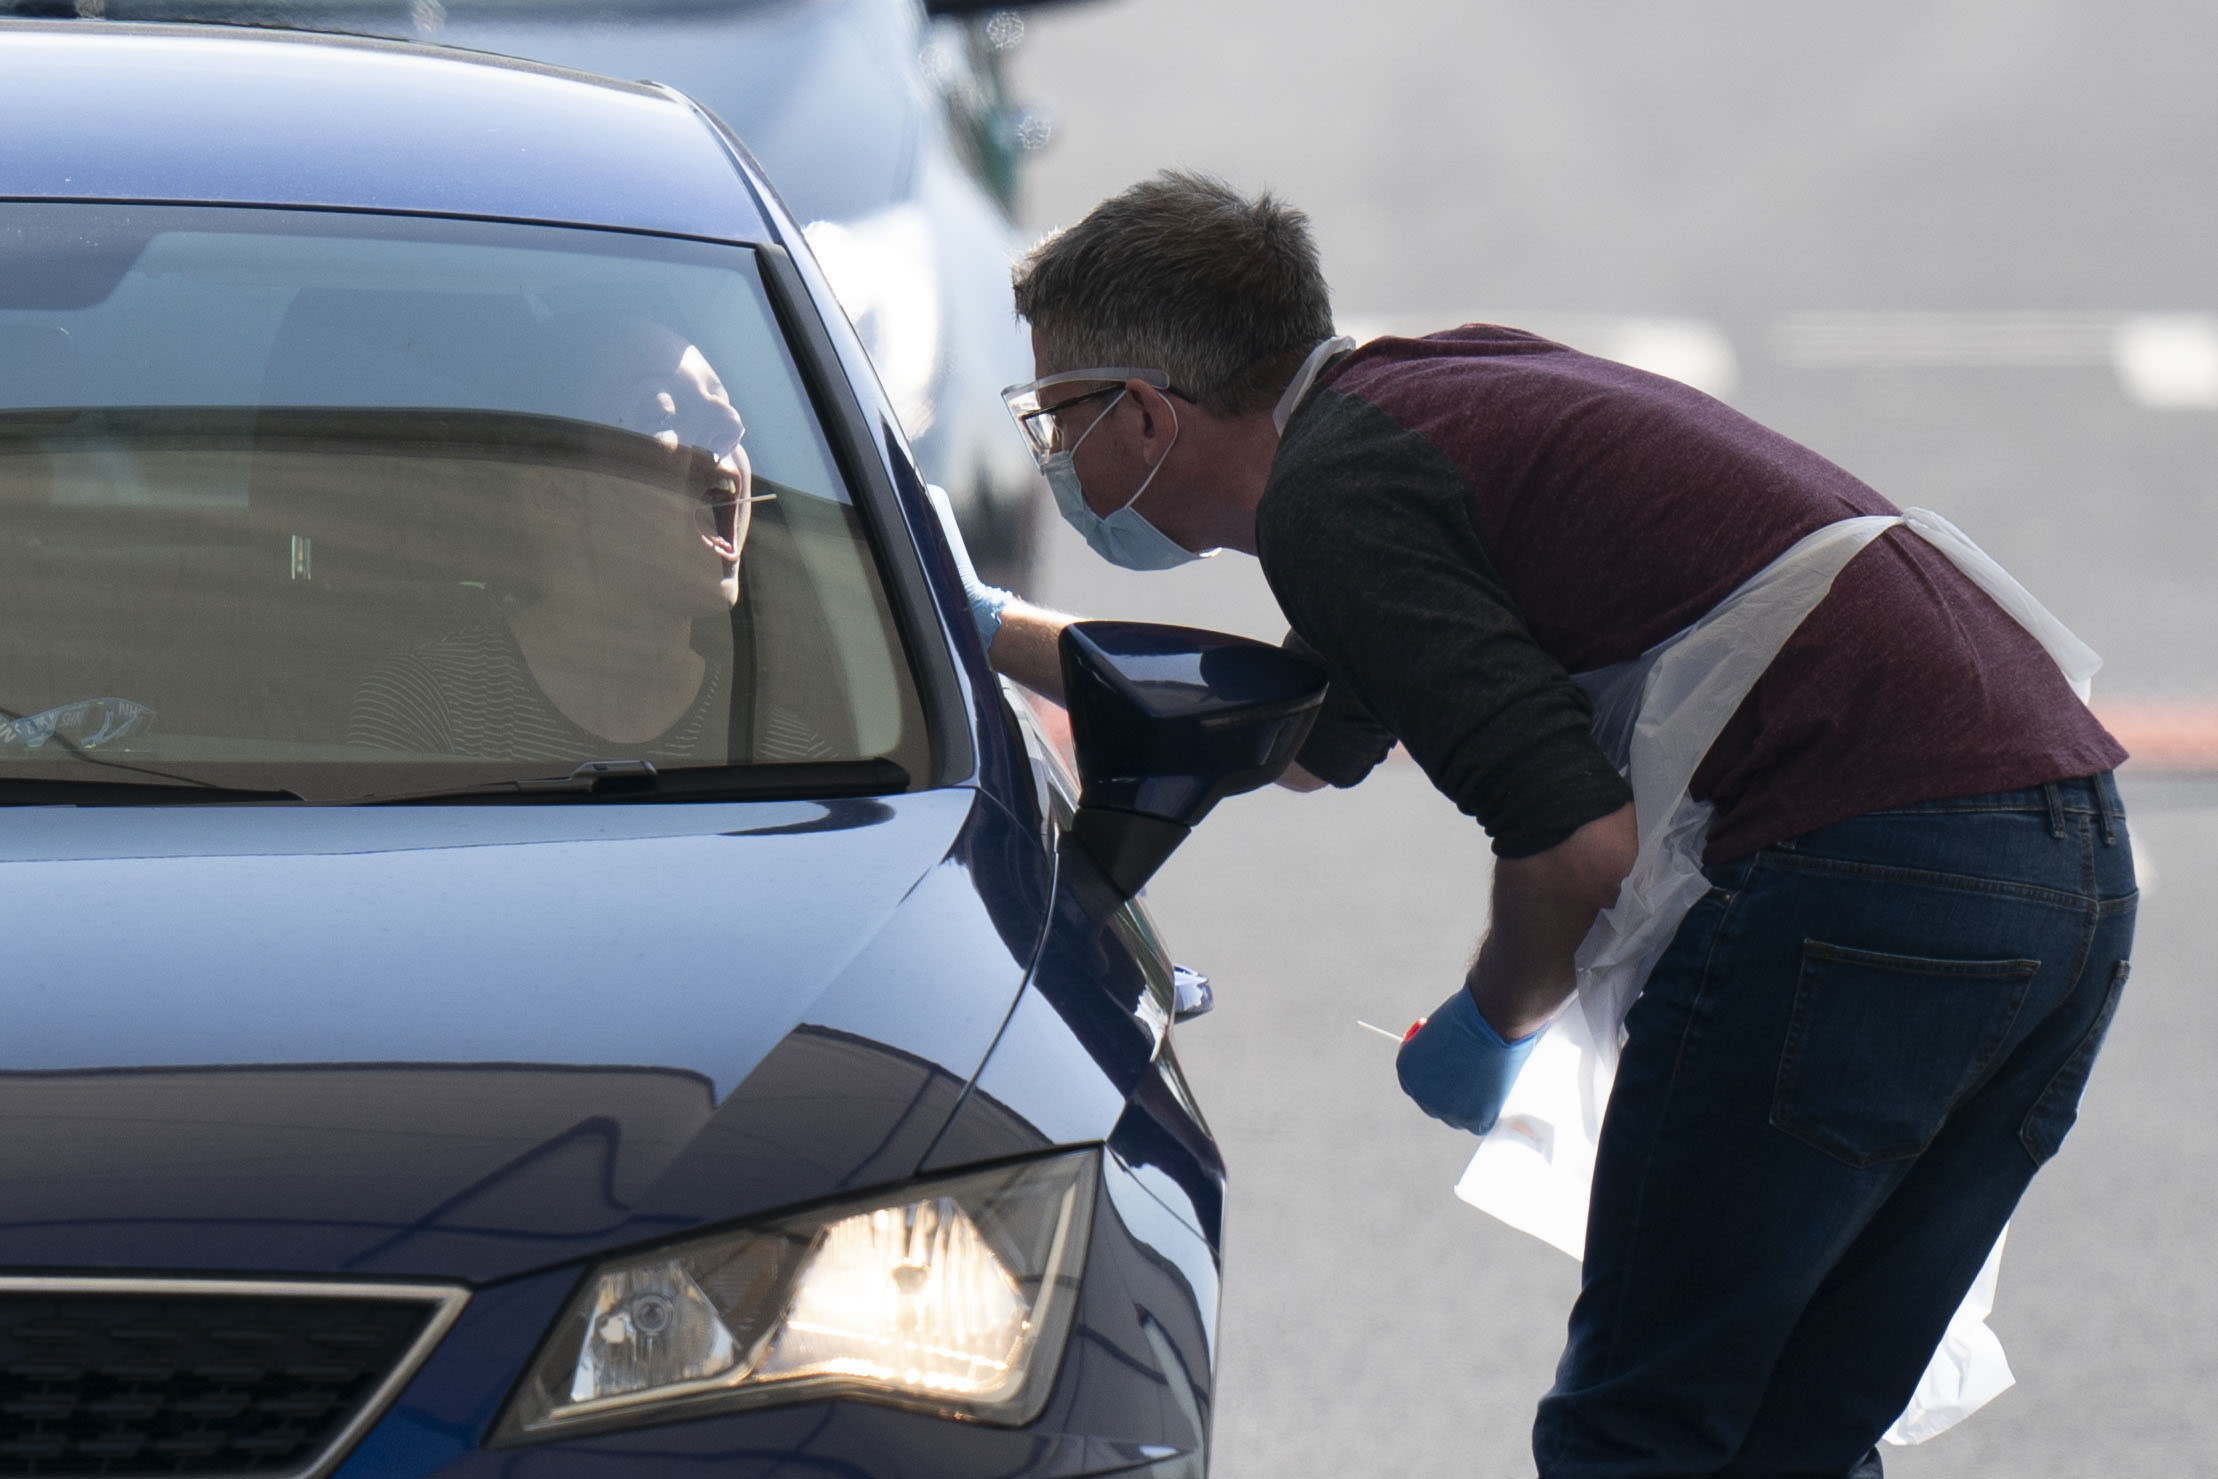 MANCHESTER, April 8, 2020 -- A medic takes samples from a person at a drive-thru COVID-19 testing site in Manchester, Britain, on April 8, 2020. (Photo by Jon Super/Xinhua via Getty) (Xinhua/ via Getty Images)